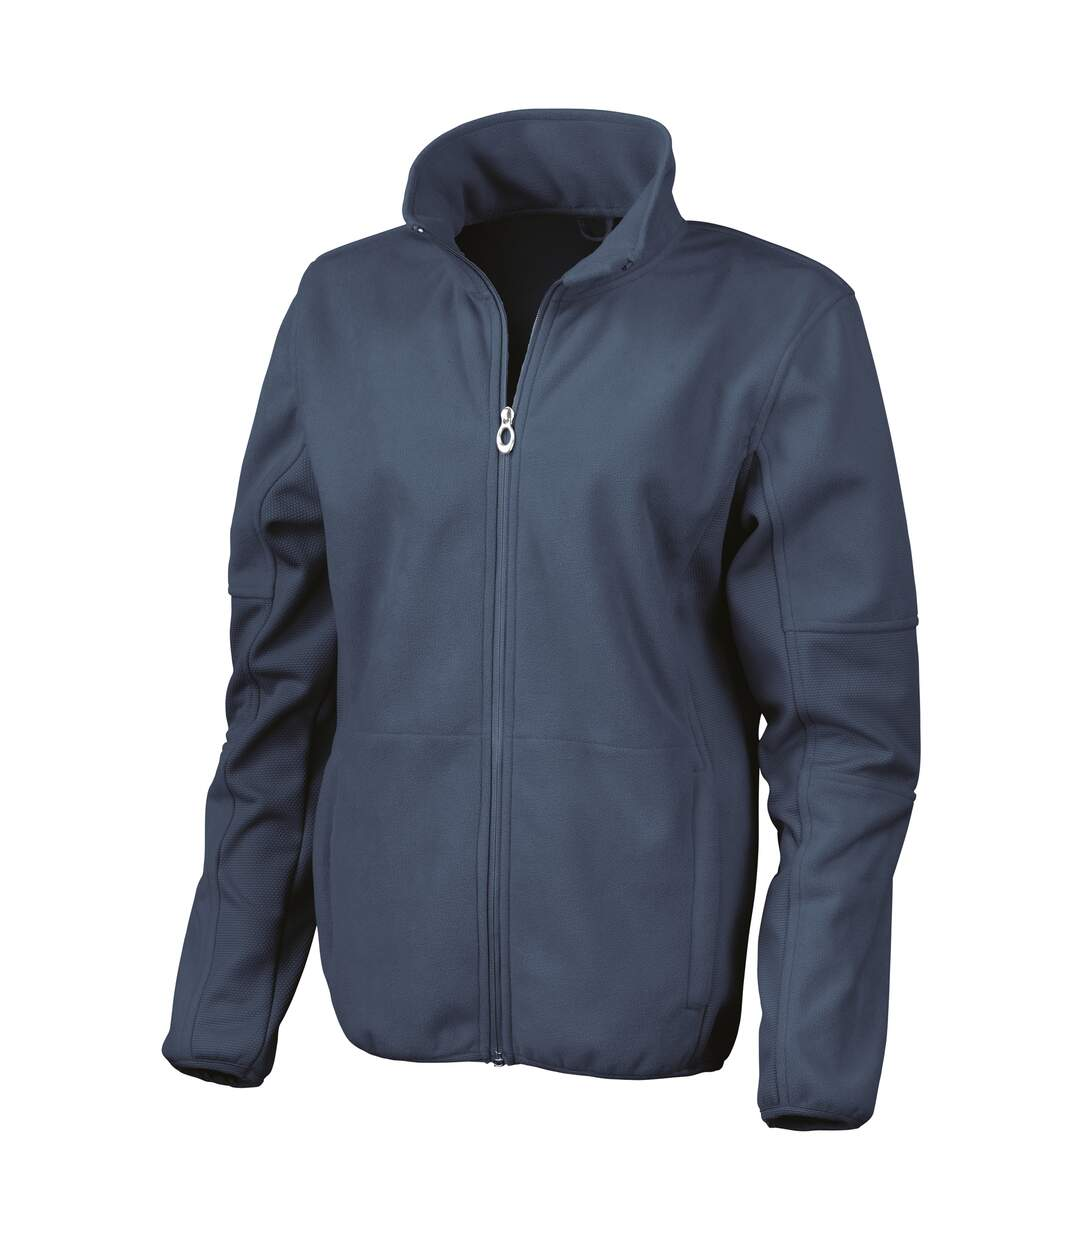 Result Womens/Ladies La Femme® Osaka Combed Pile Softshell Jacket (Waterproof, Windproof And Breathable) (Navy) - UTRW3214